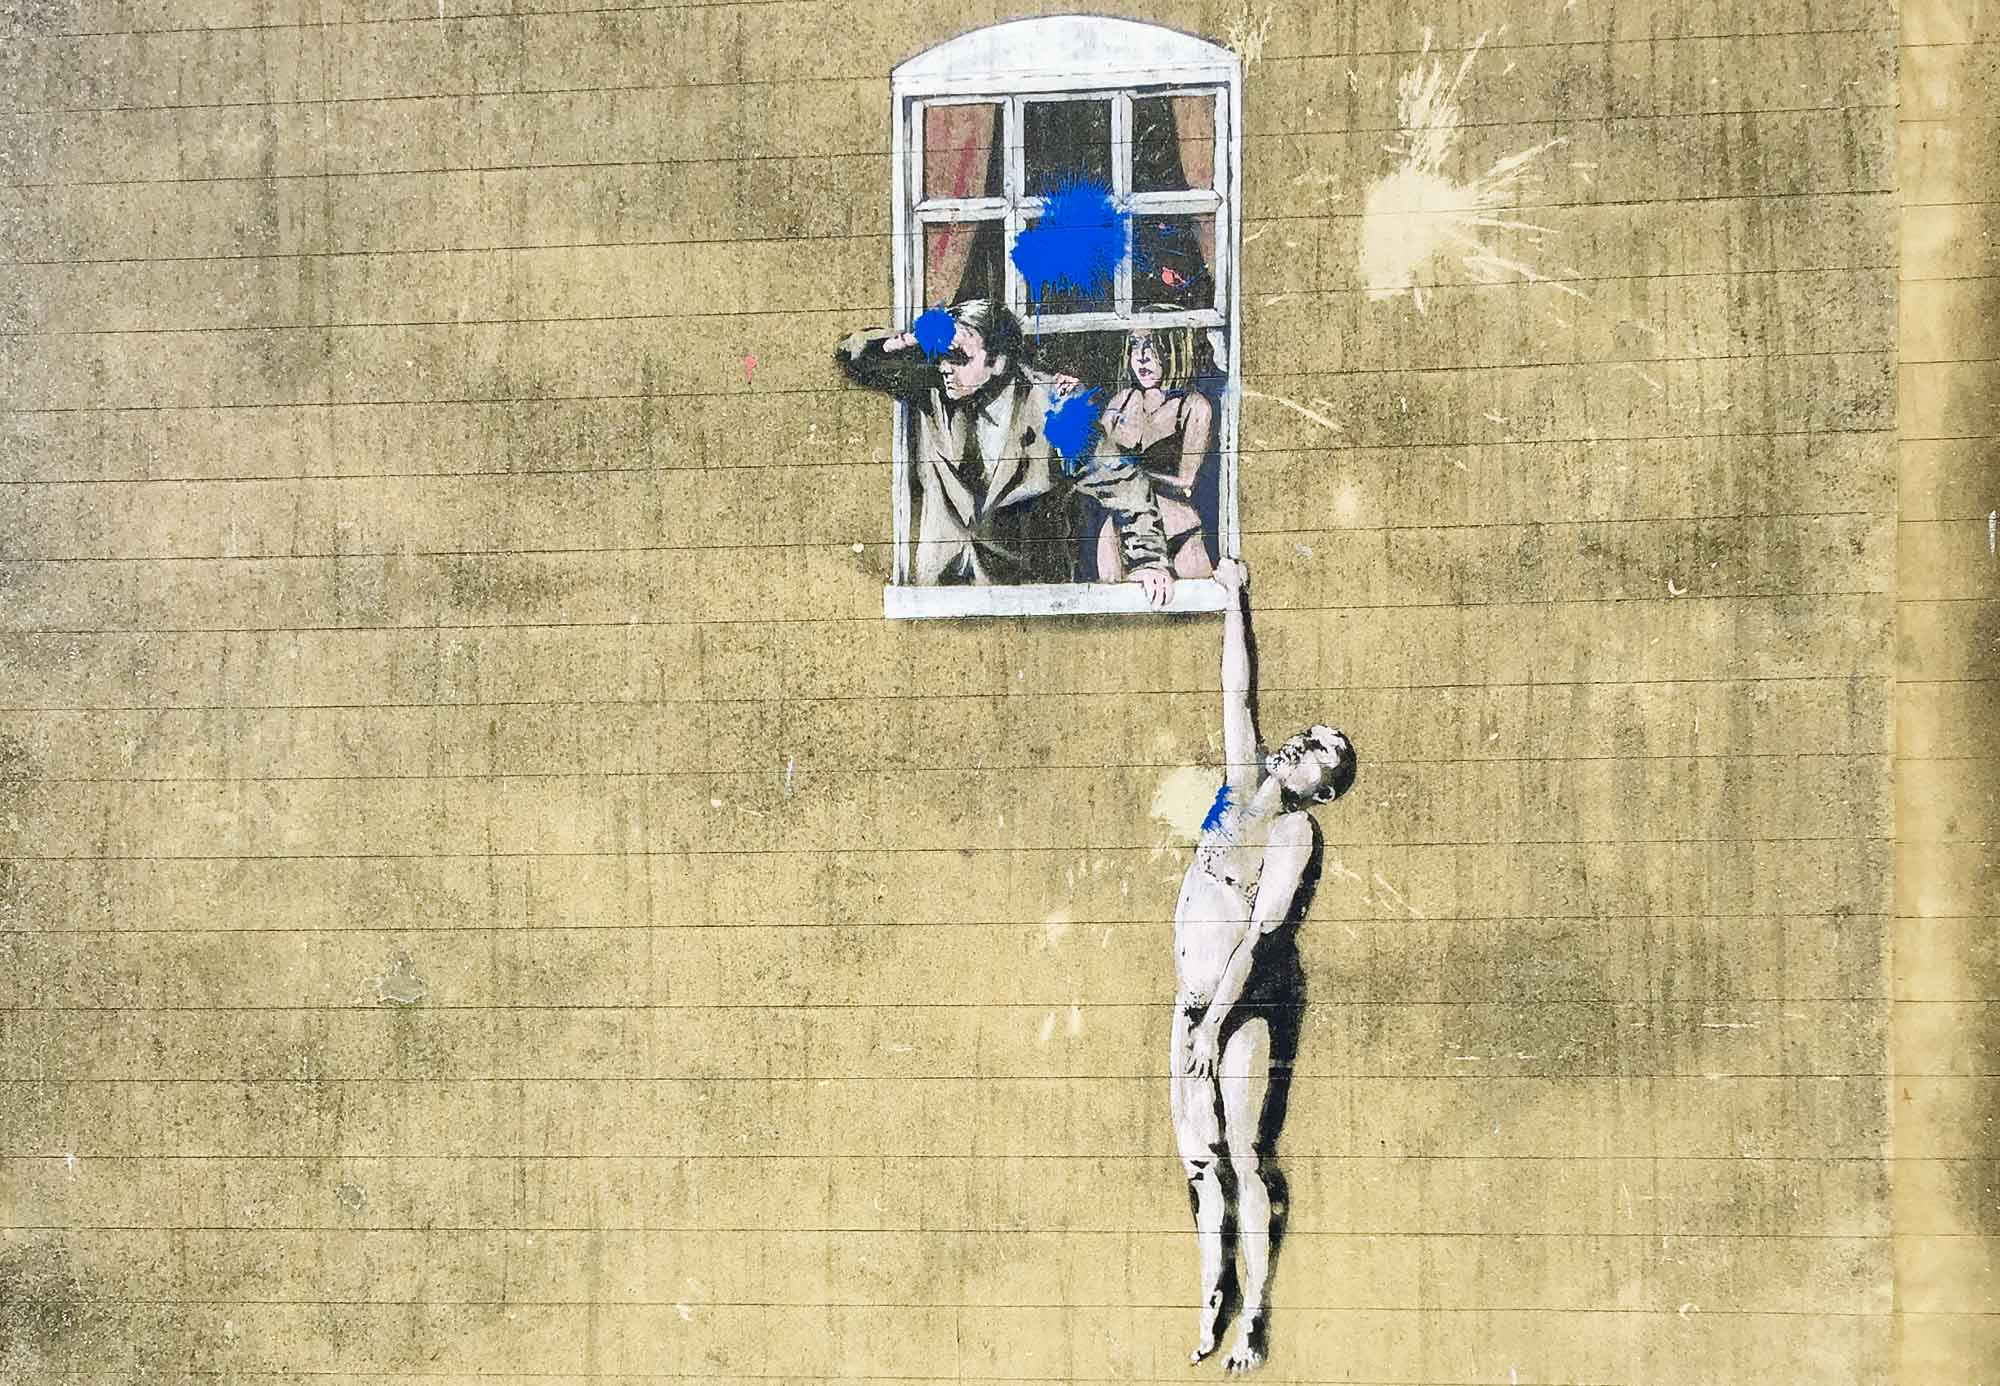 Things to do in Bristol - Banksy artwork in Bristol